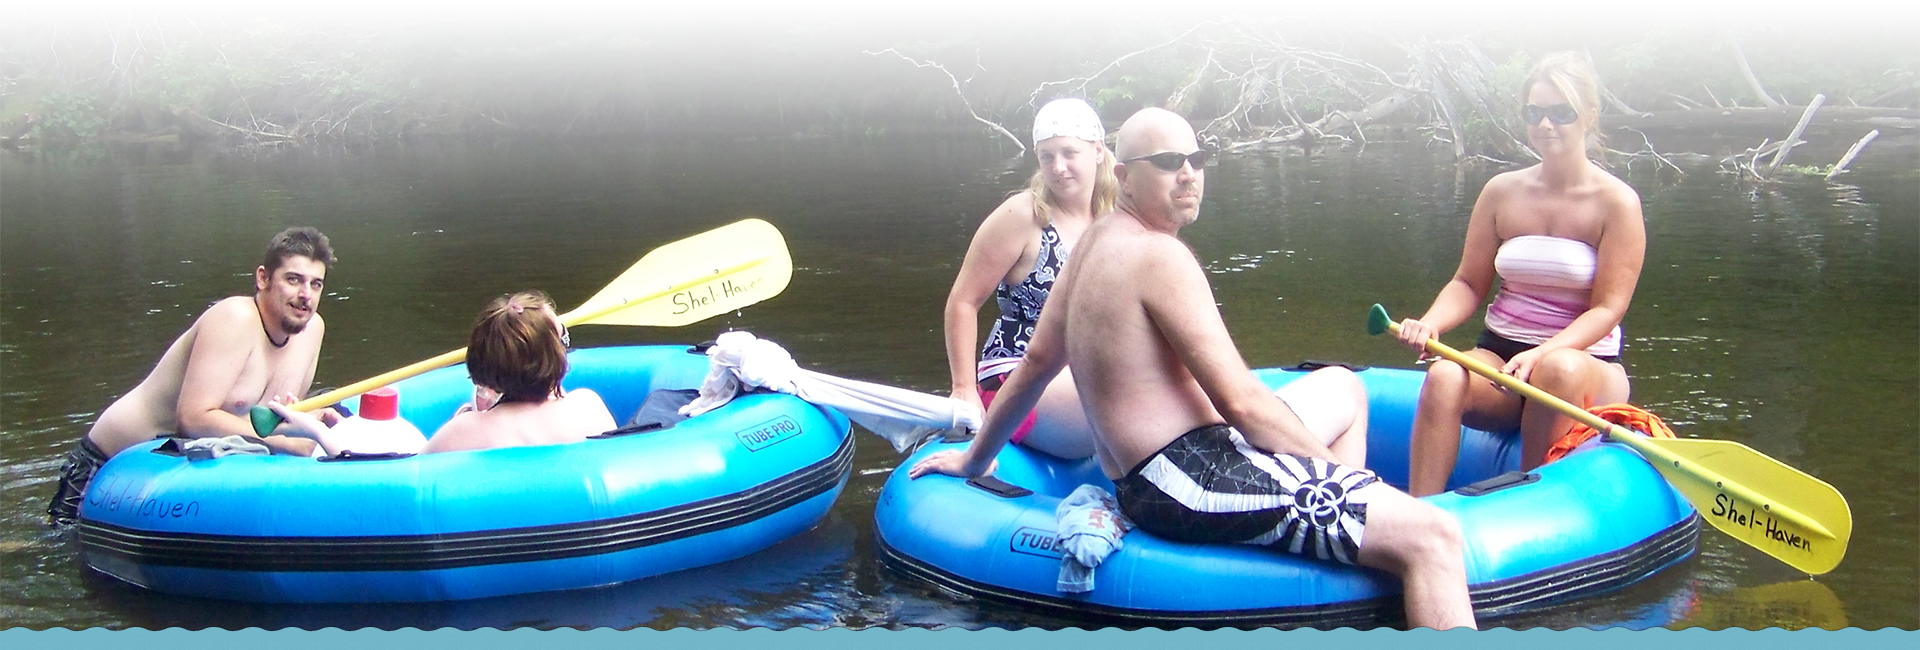 Tubing down the manistee river with Shel-haven